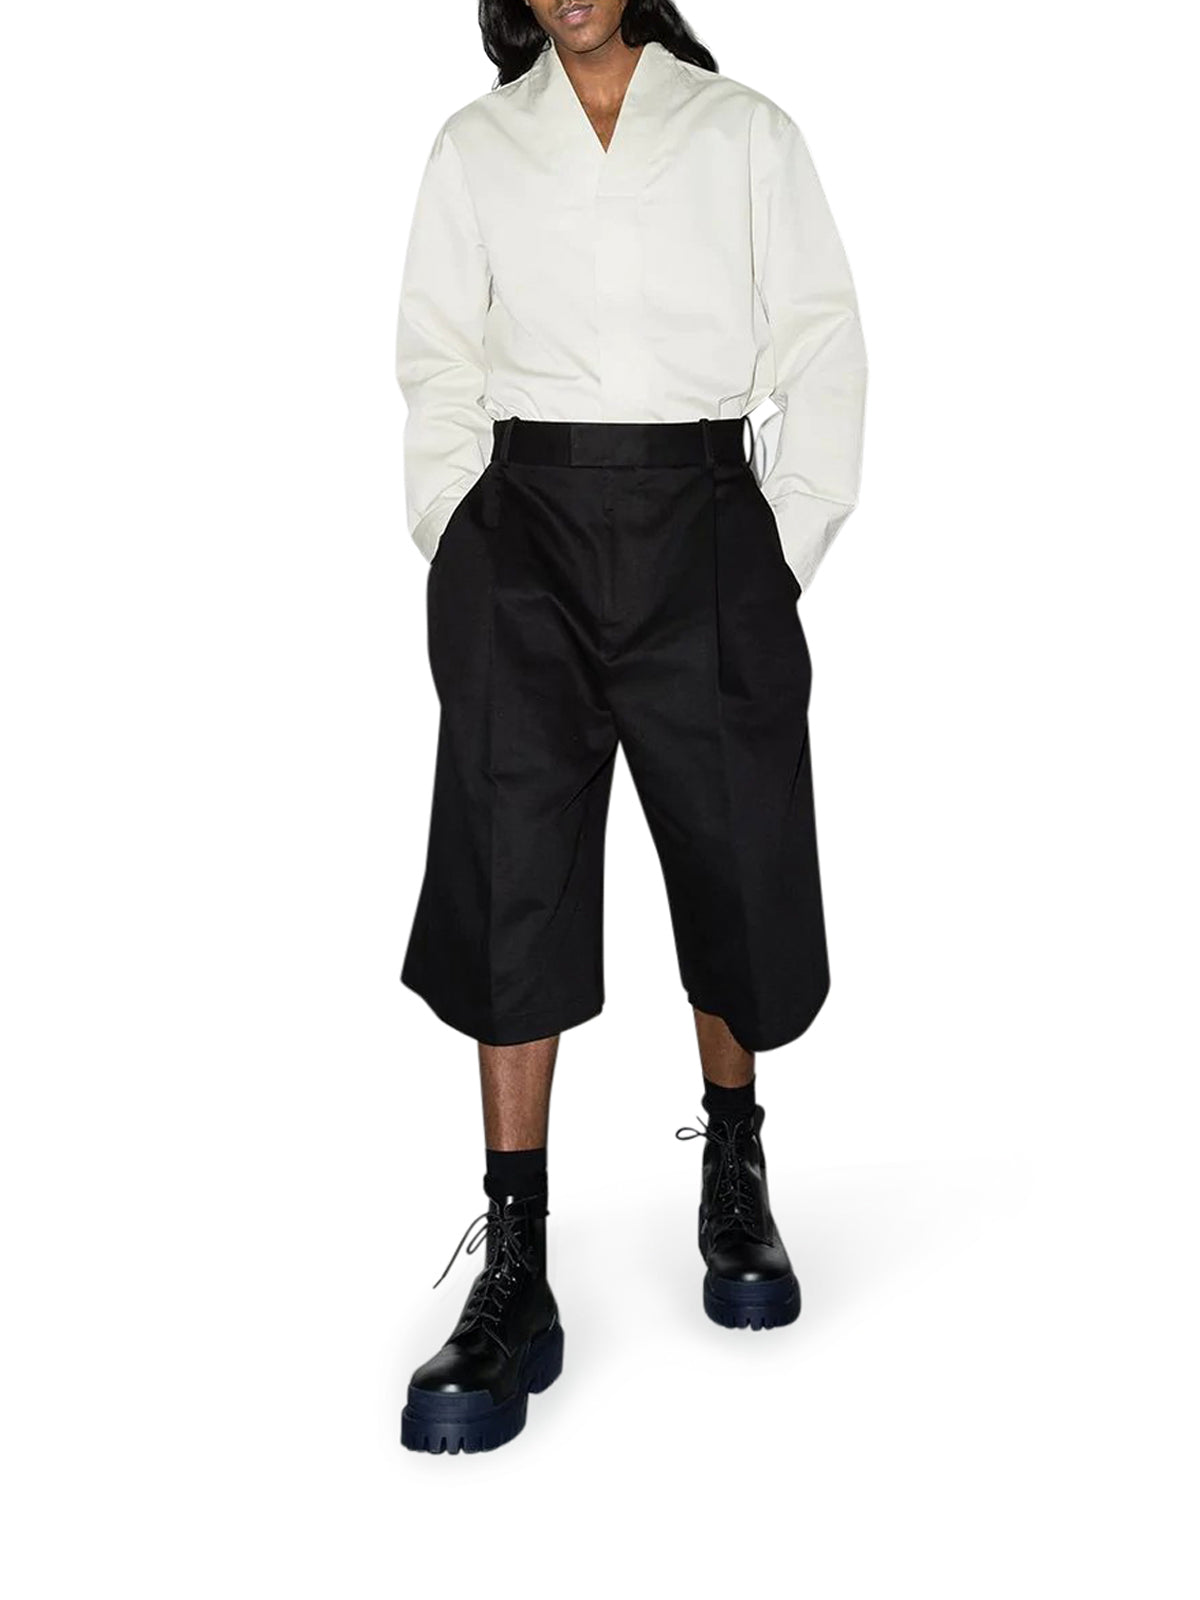 over-the-knee tailored shorts